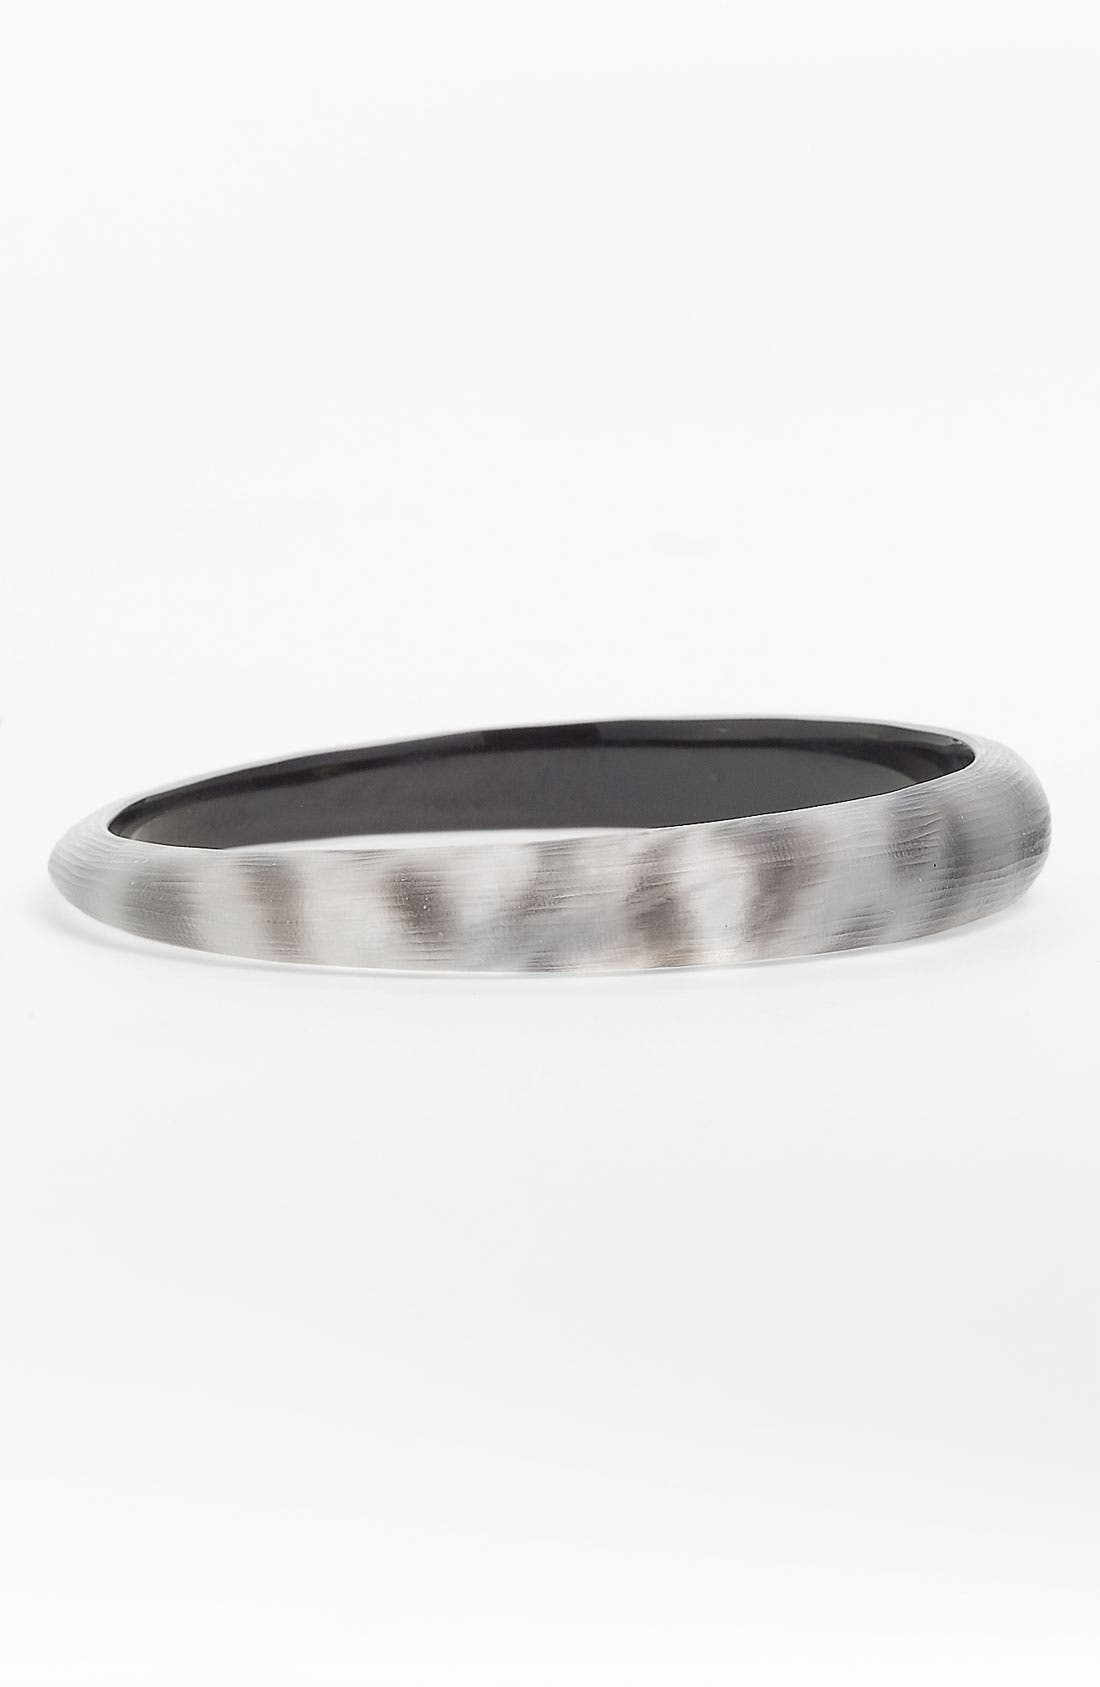 Alternate Image 1 Selected - Alexis Bittar Leopard Skinny Tapered Bangle (Nordstrom Exclusive)